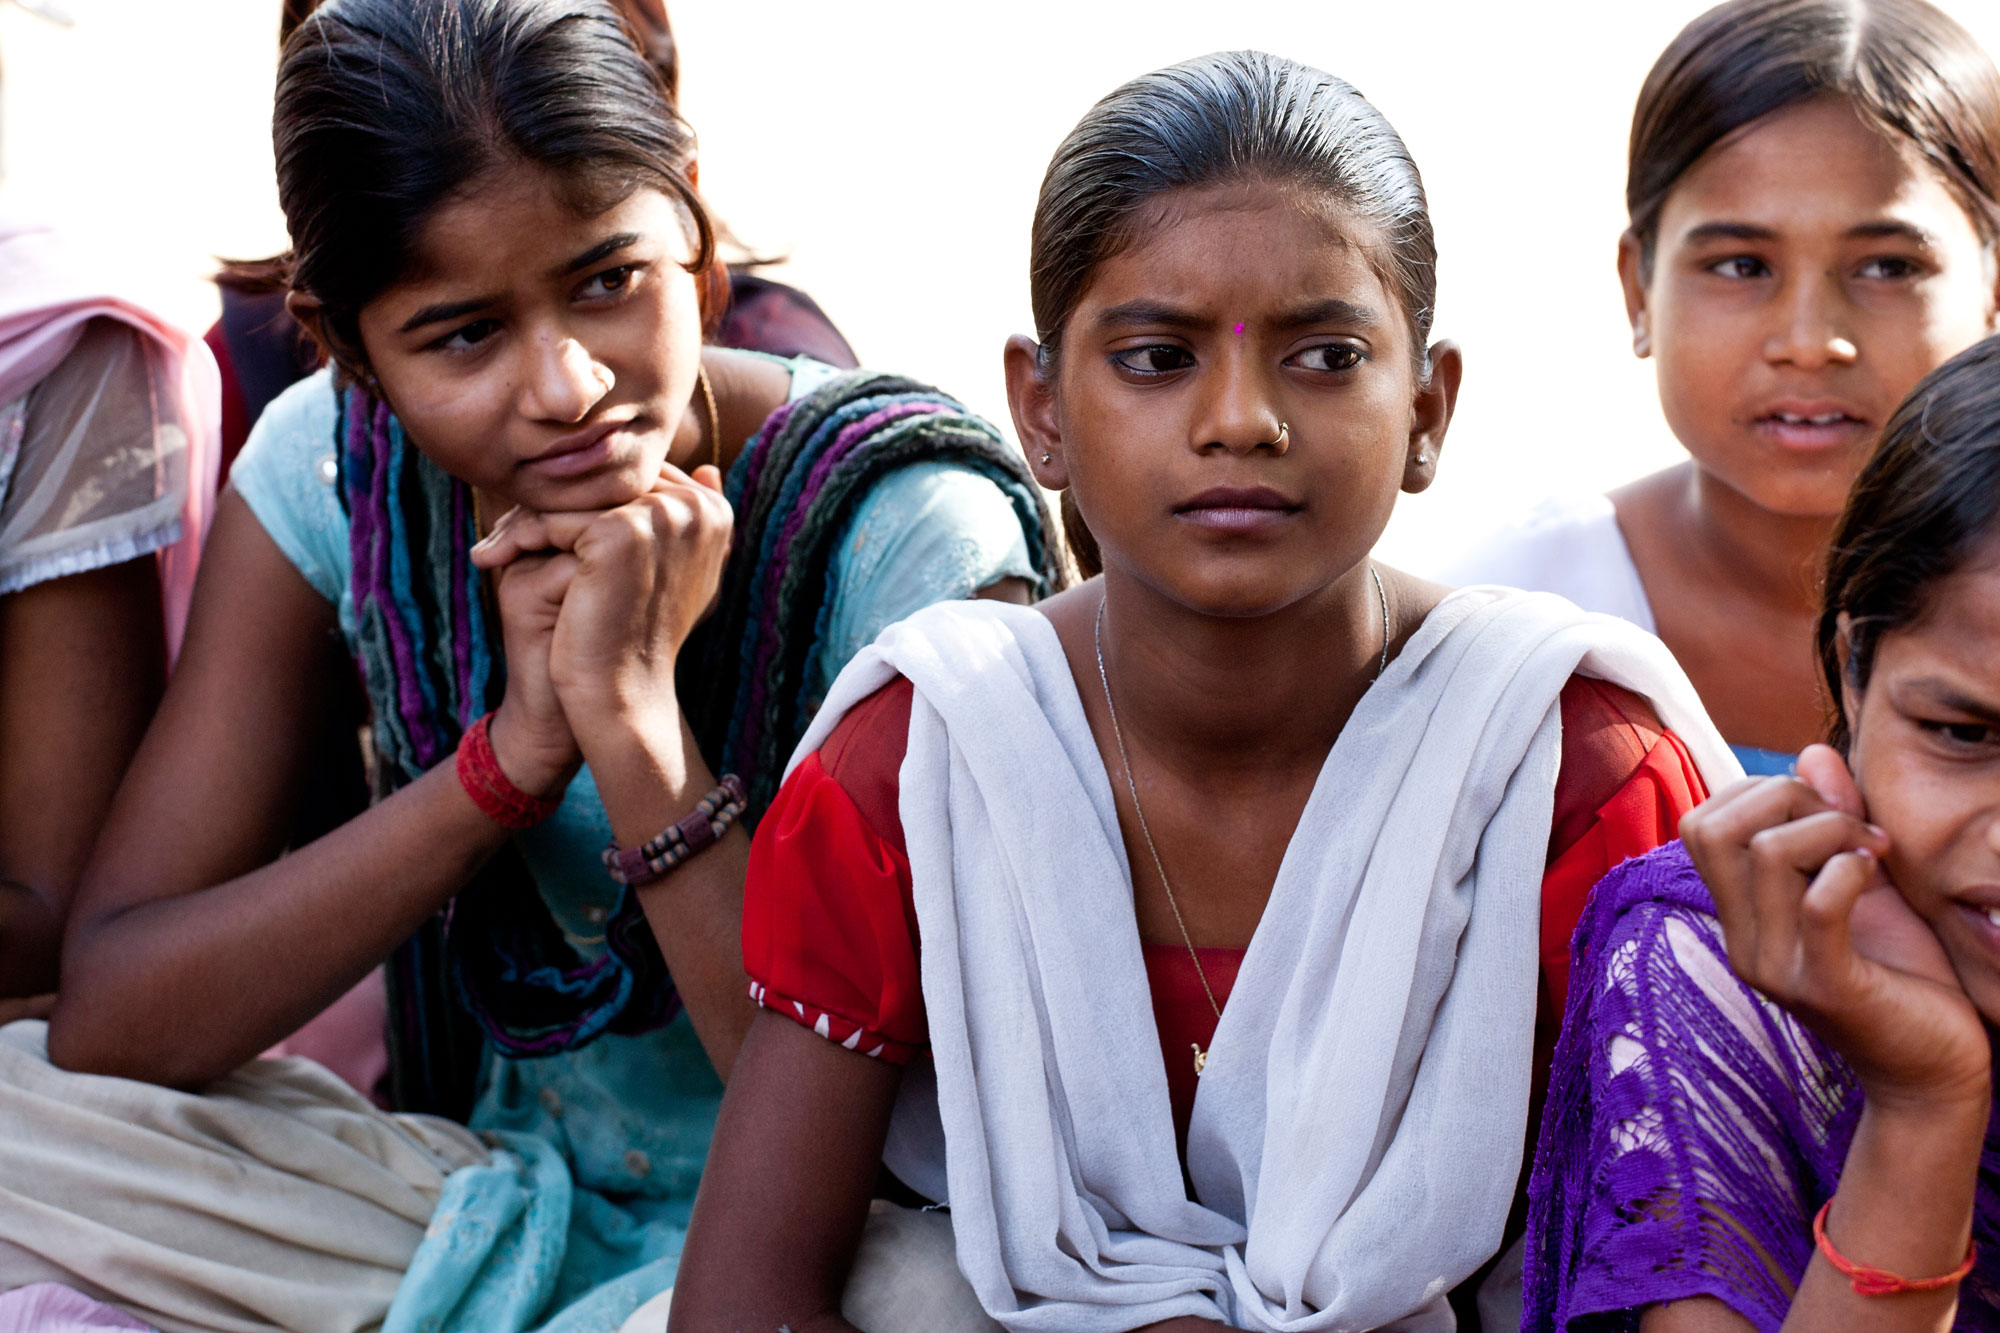 Young Indian girls sitting together